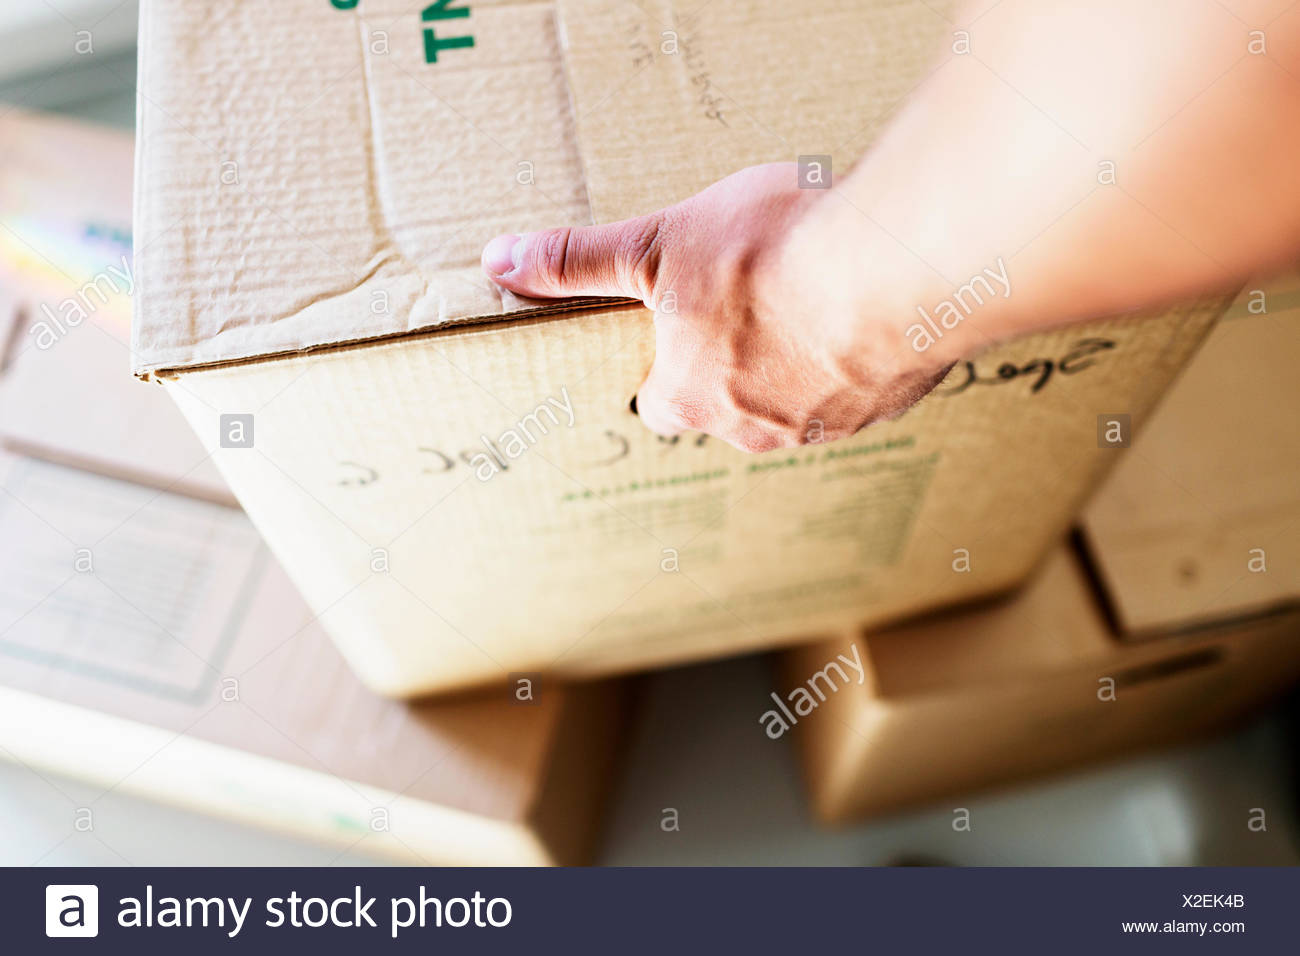 Cropped image of man's hand picking up cardboard box at new home - Stock Image